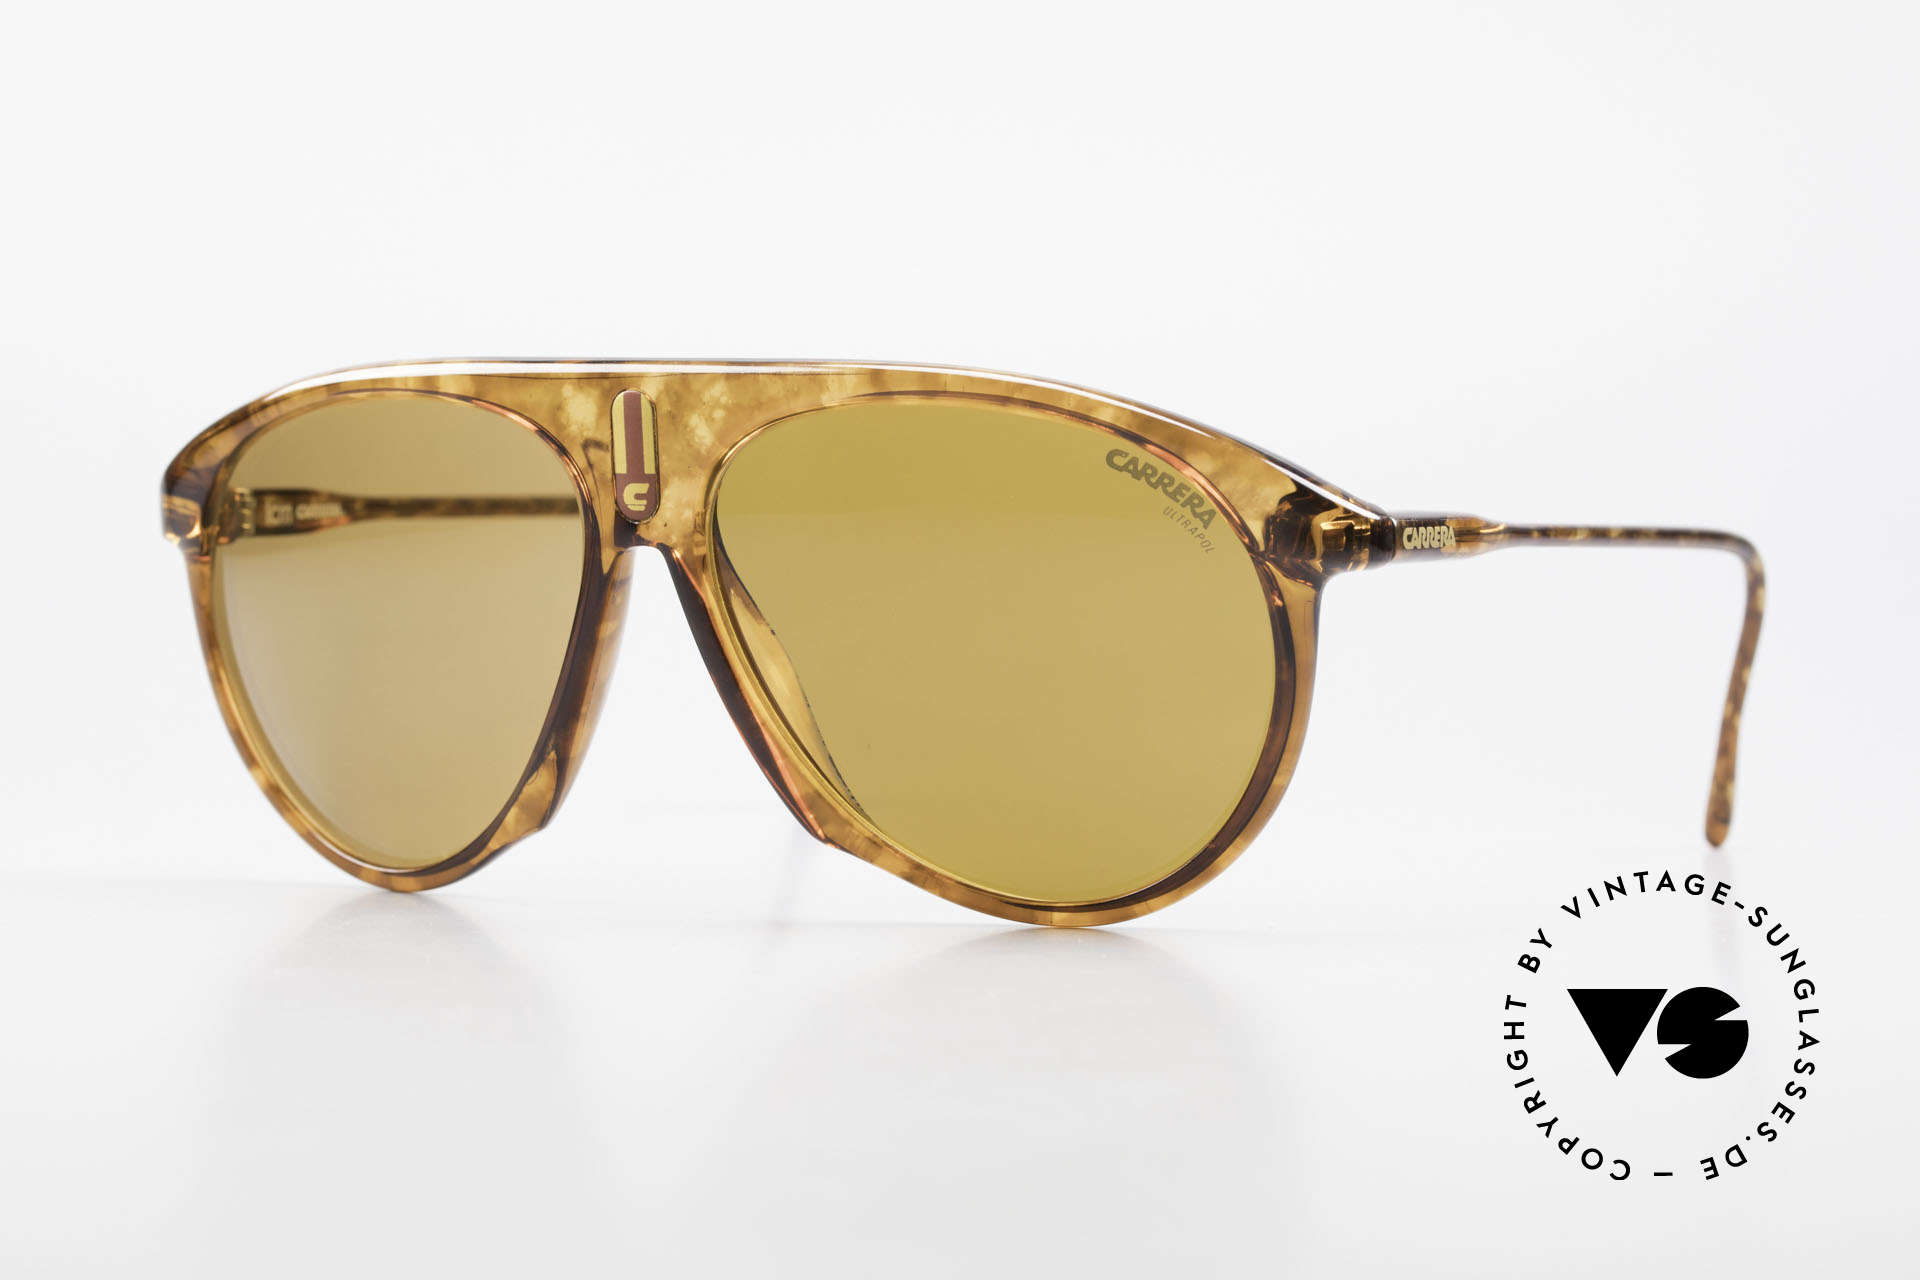 Carrera 5427 Polarized Sports Shades 80's, Carrera '5427 Sprinter' sports shades from 1988, Made for Men and Women